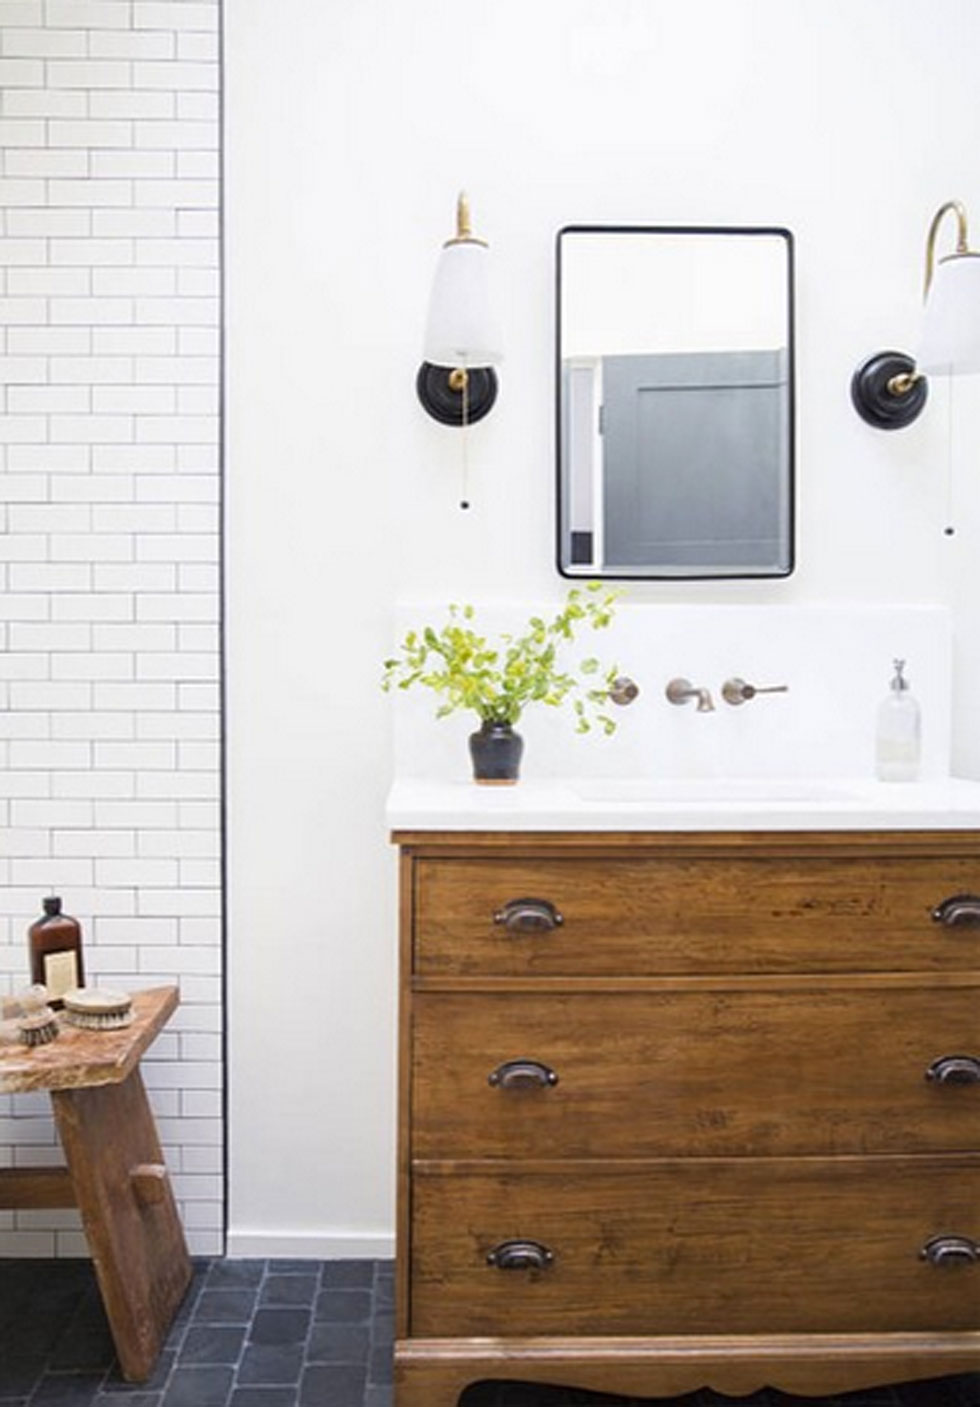 How to turn a dresser into a bathroom vanity a one of a for Turning a dresser into a bathroom vanity